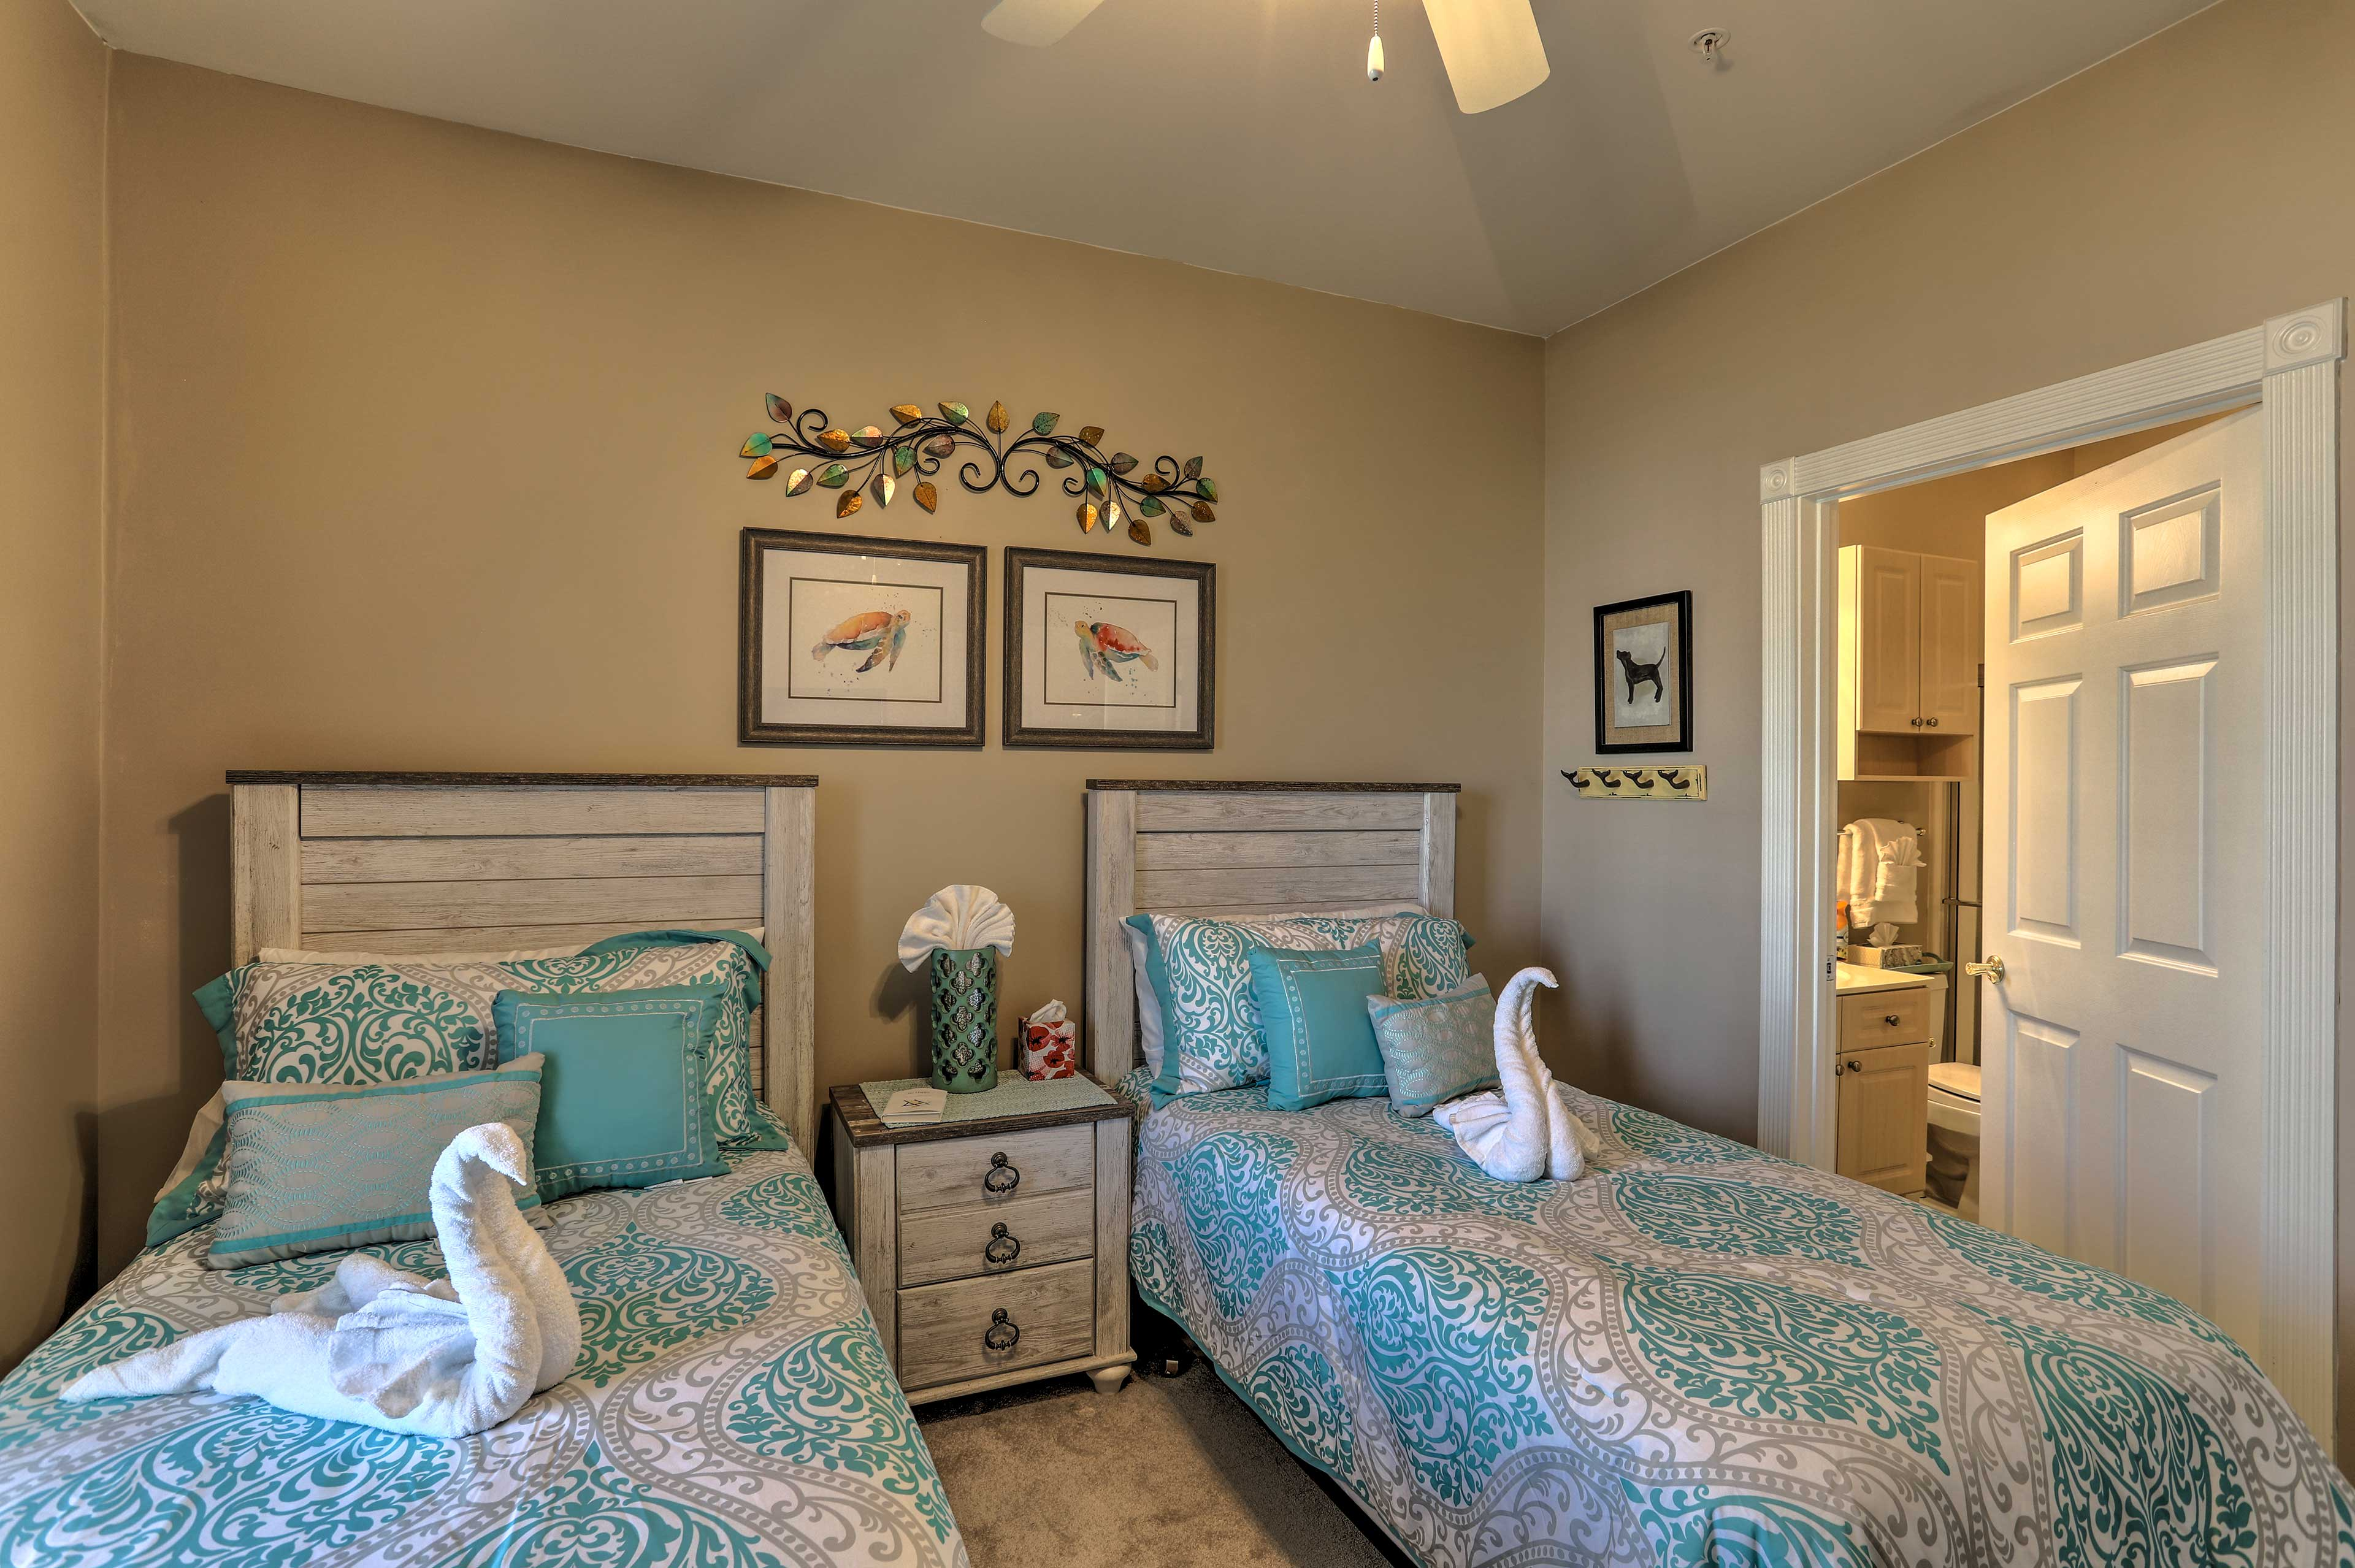 The king bed can be converted to 2 twin beds.